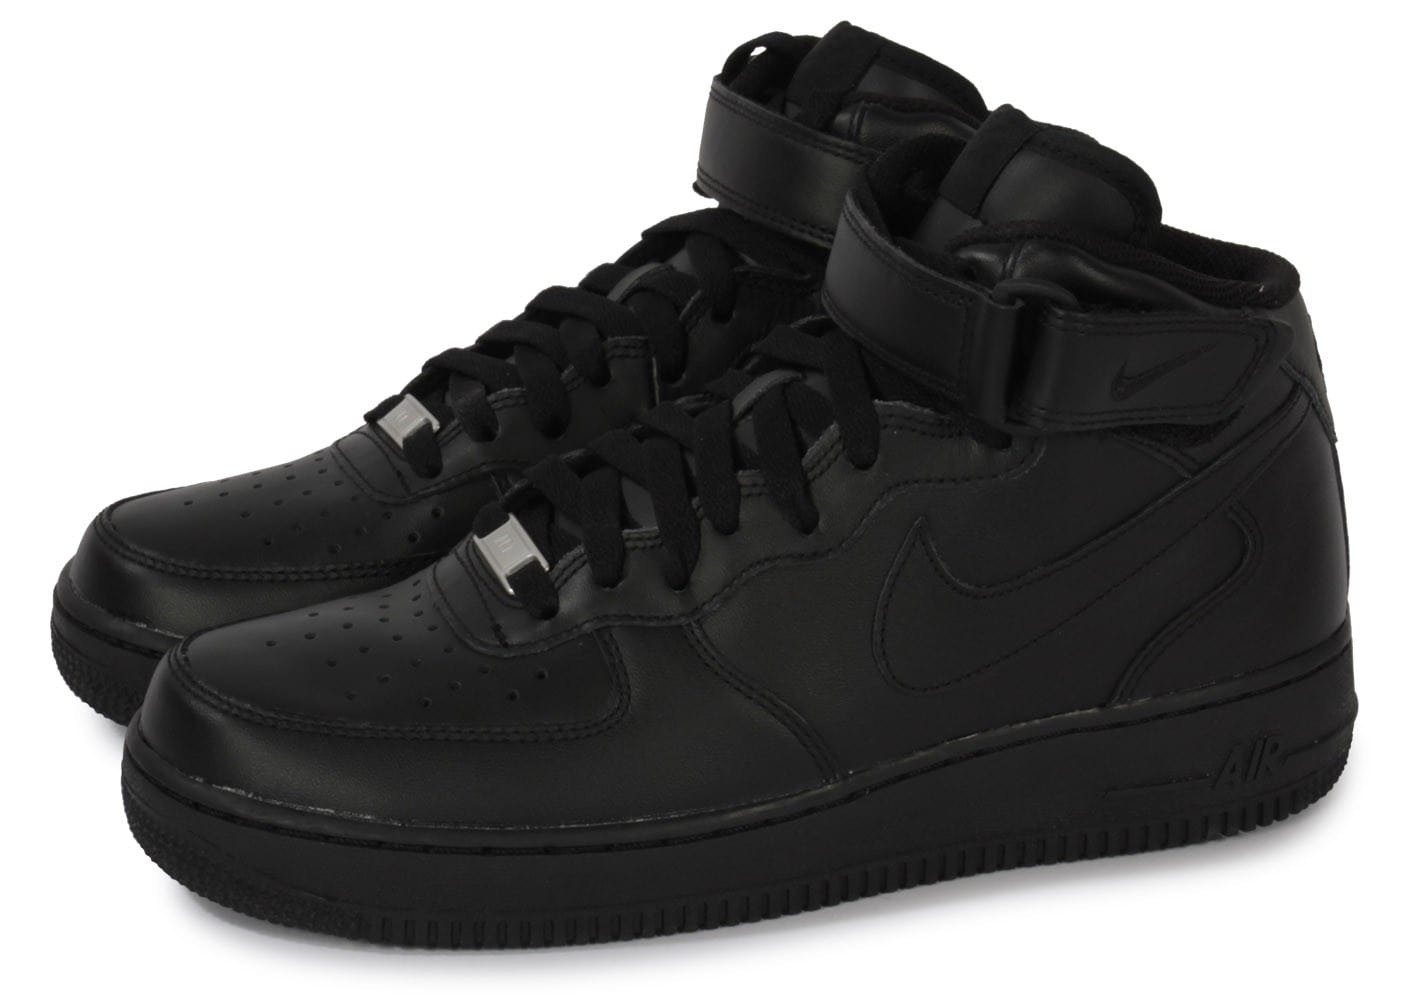 nike air force 1 mid 07 noire chaussures baskets homme chausport. Black Bedroom Furniture Sets. Home Design Ideas